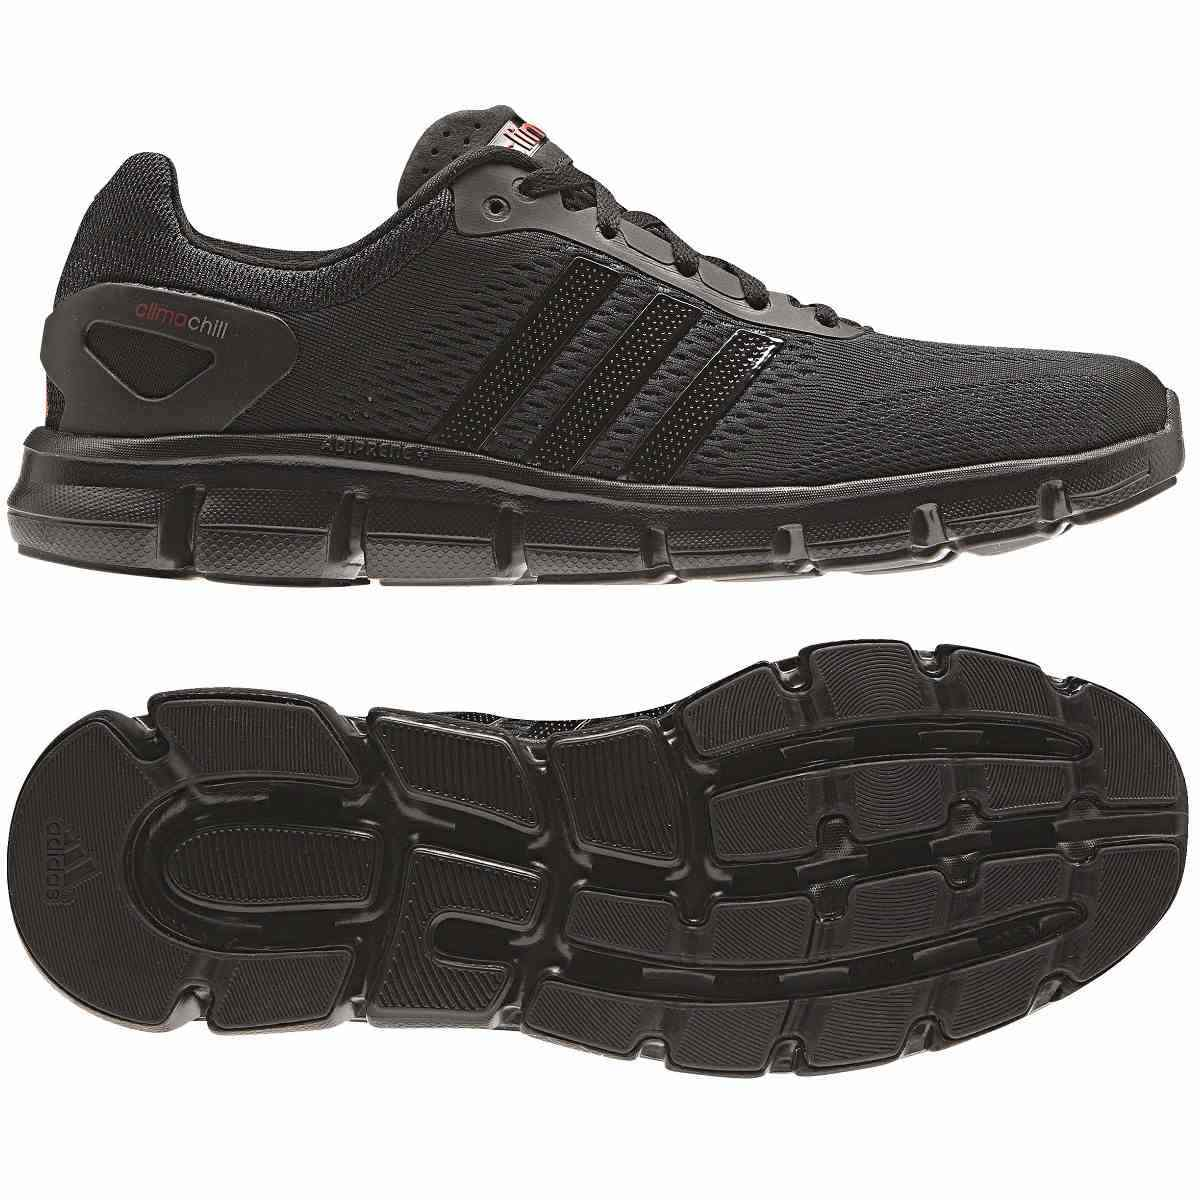 adidas climacool ride schuhe sportschuhe laufschuhe jogging herren schwarz blau ebay. Black Bedroom Furniture Sets. Home Design Ideas